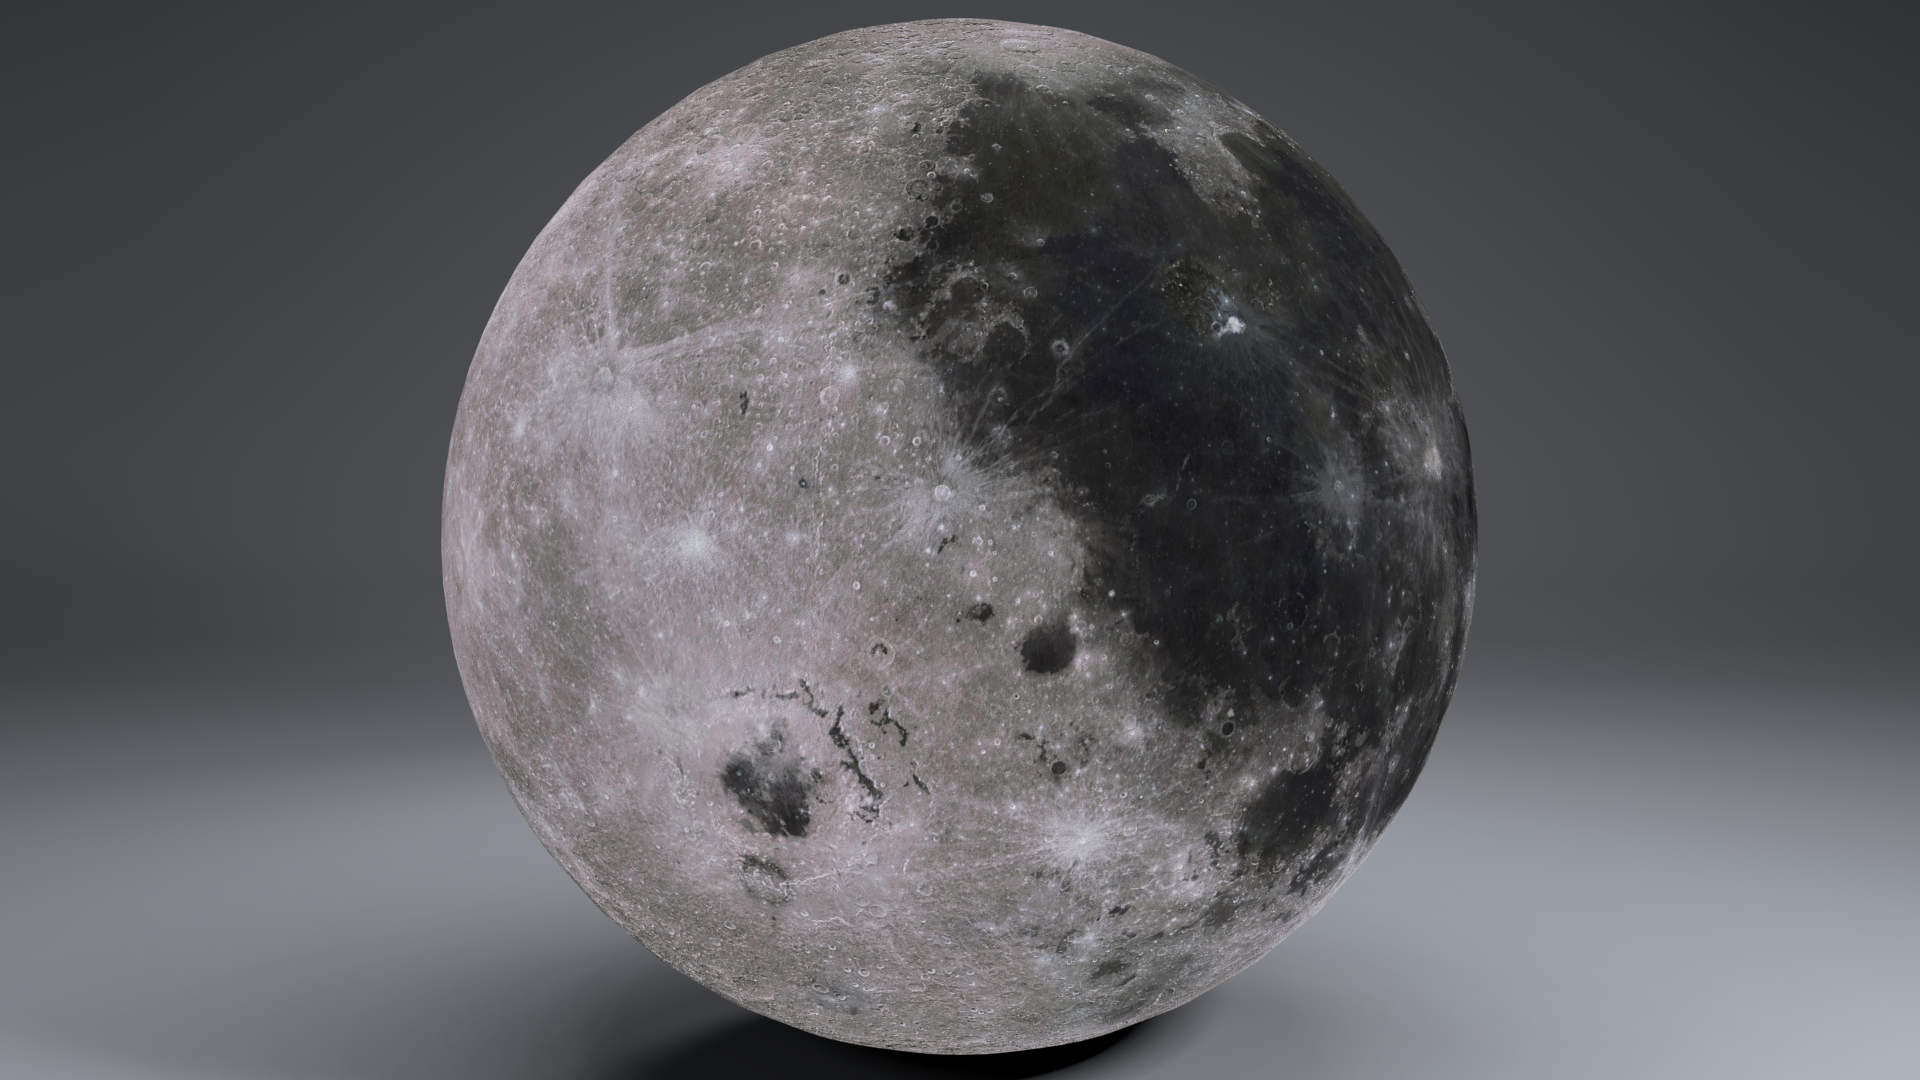 moonglobe 8k 3d model 3ds fbx blend dae obj 221866